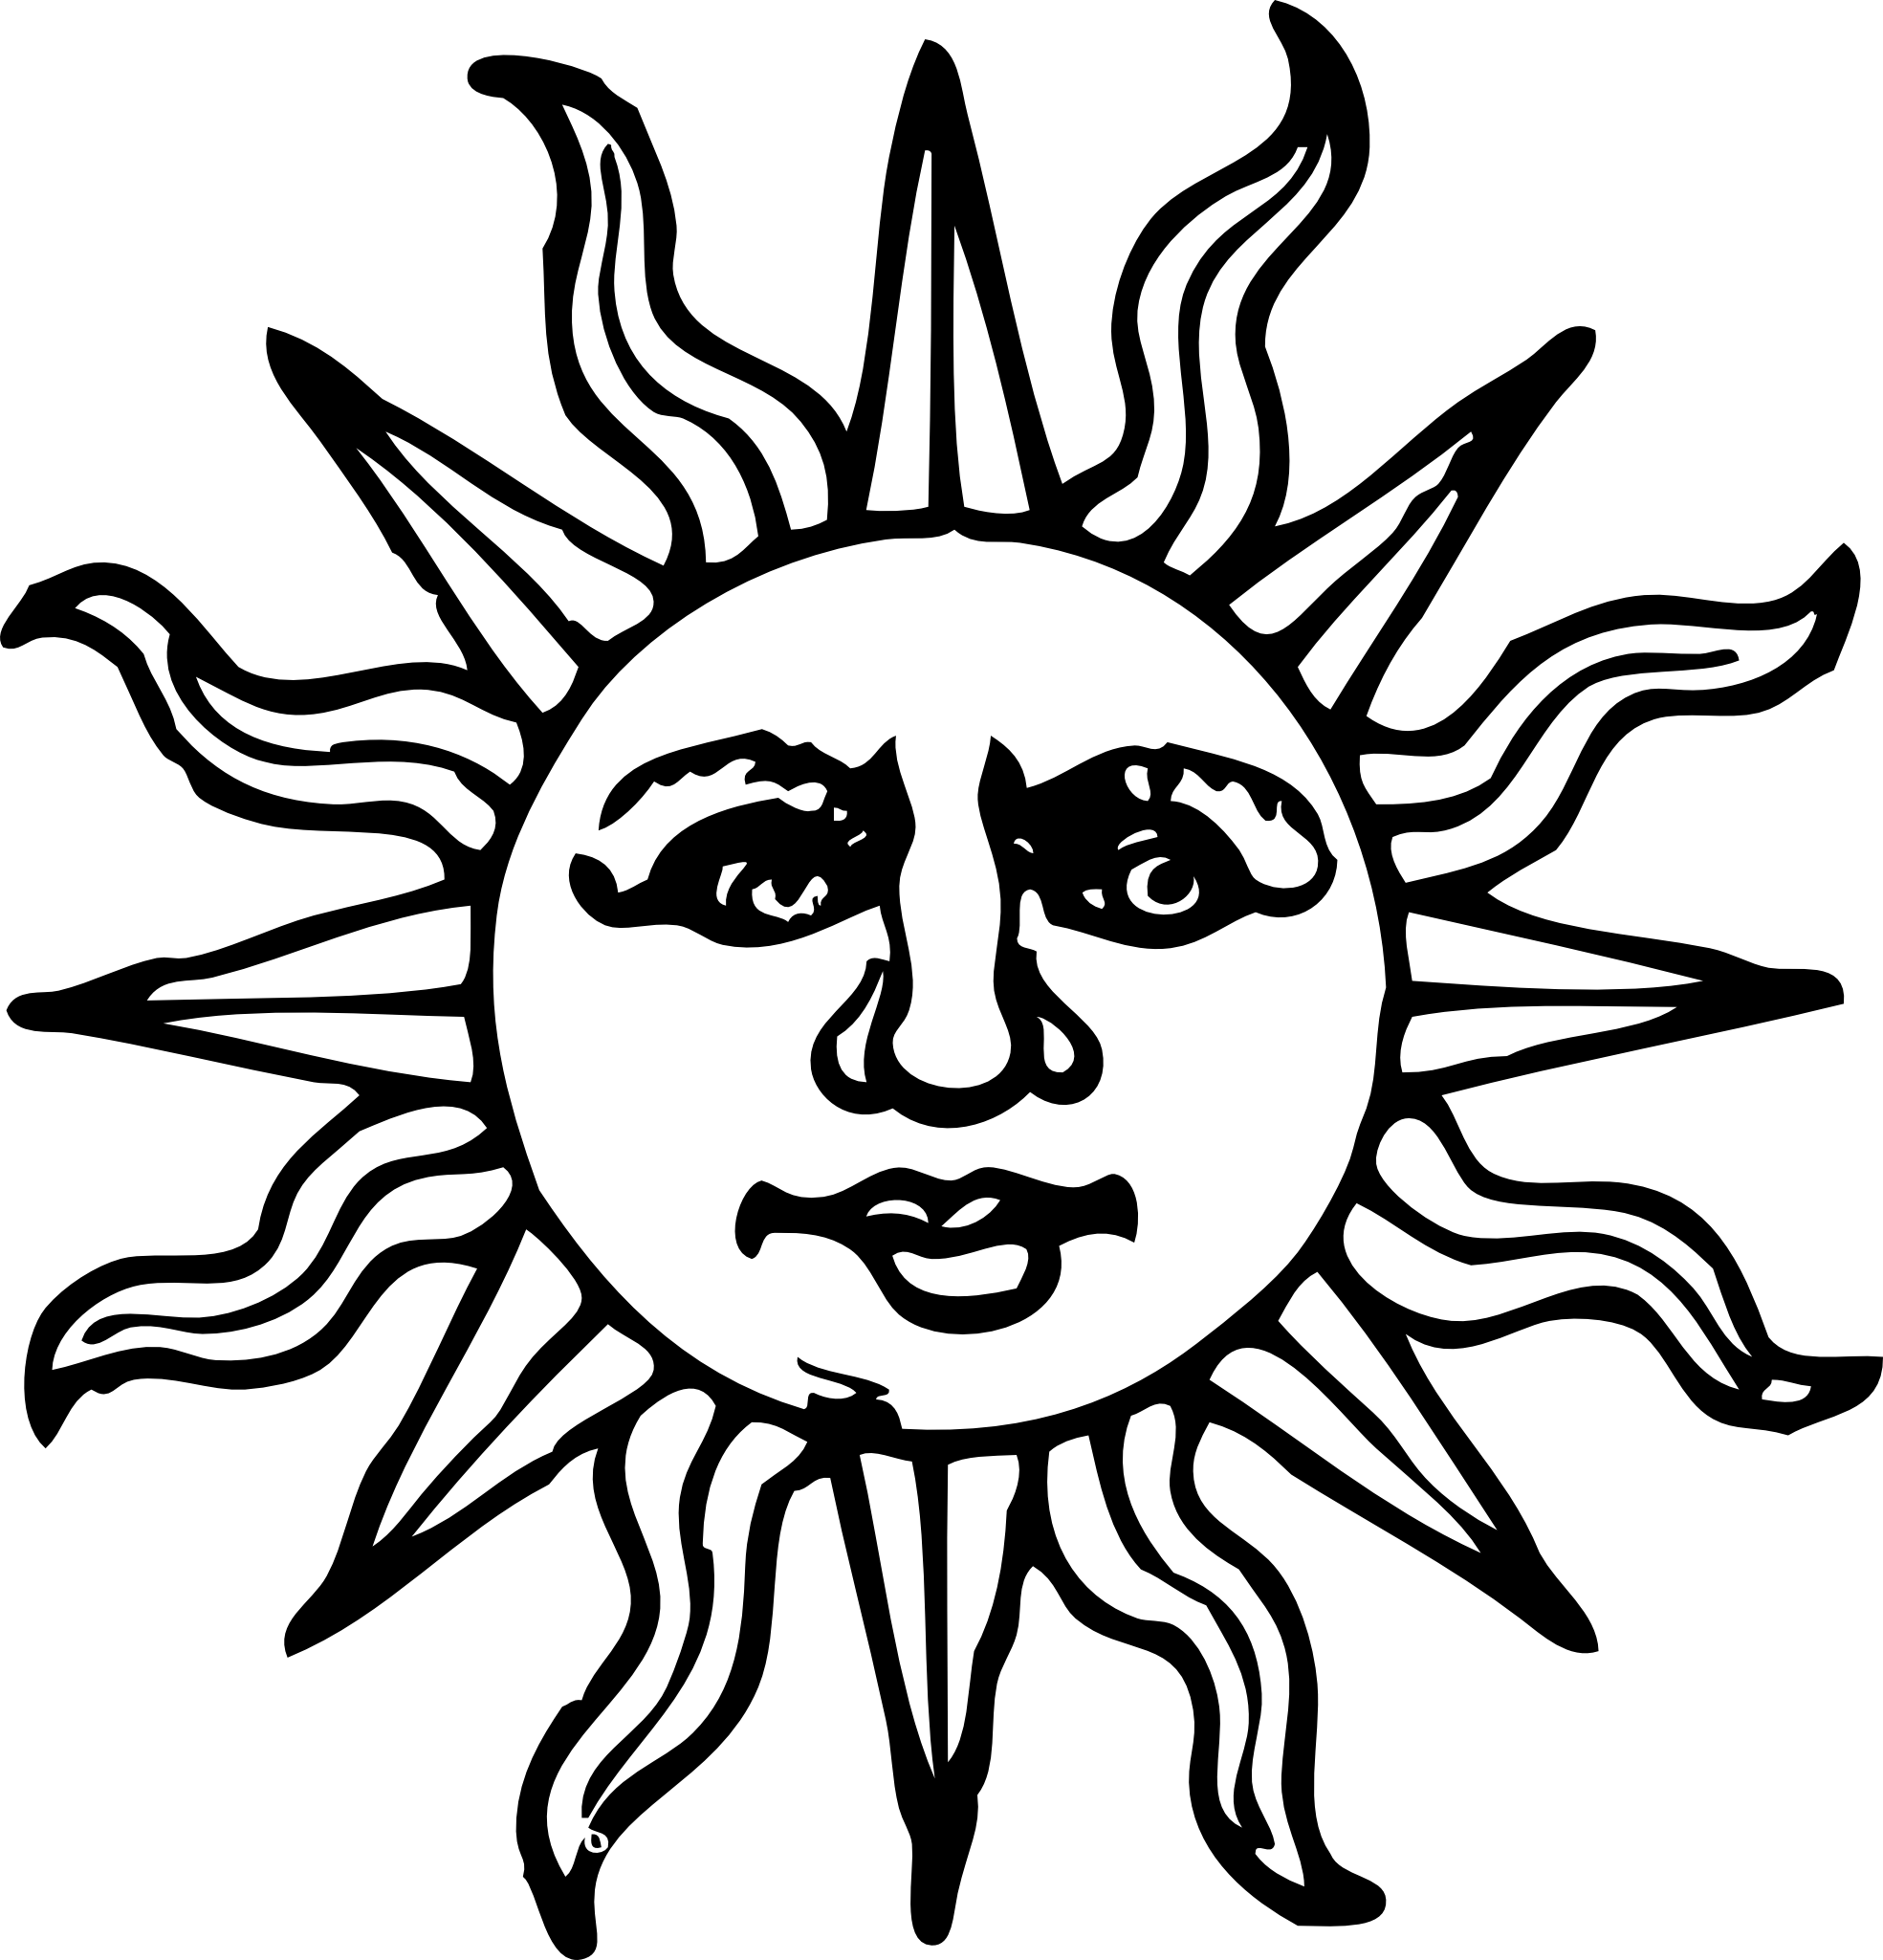 Sun Drawing Black And White at GetDrawings.com | Free for personal ... jpg